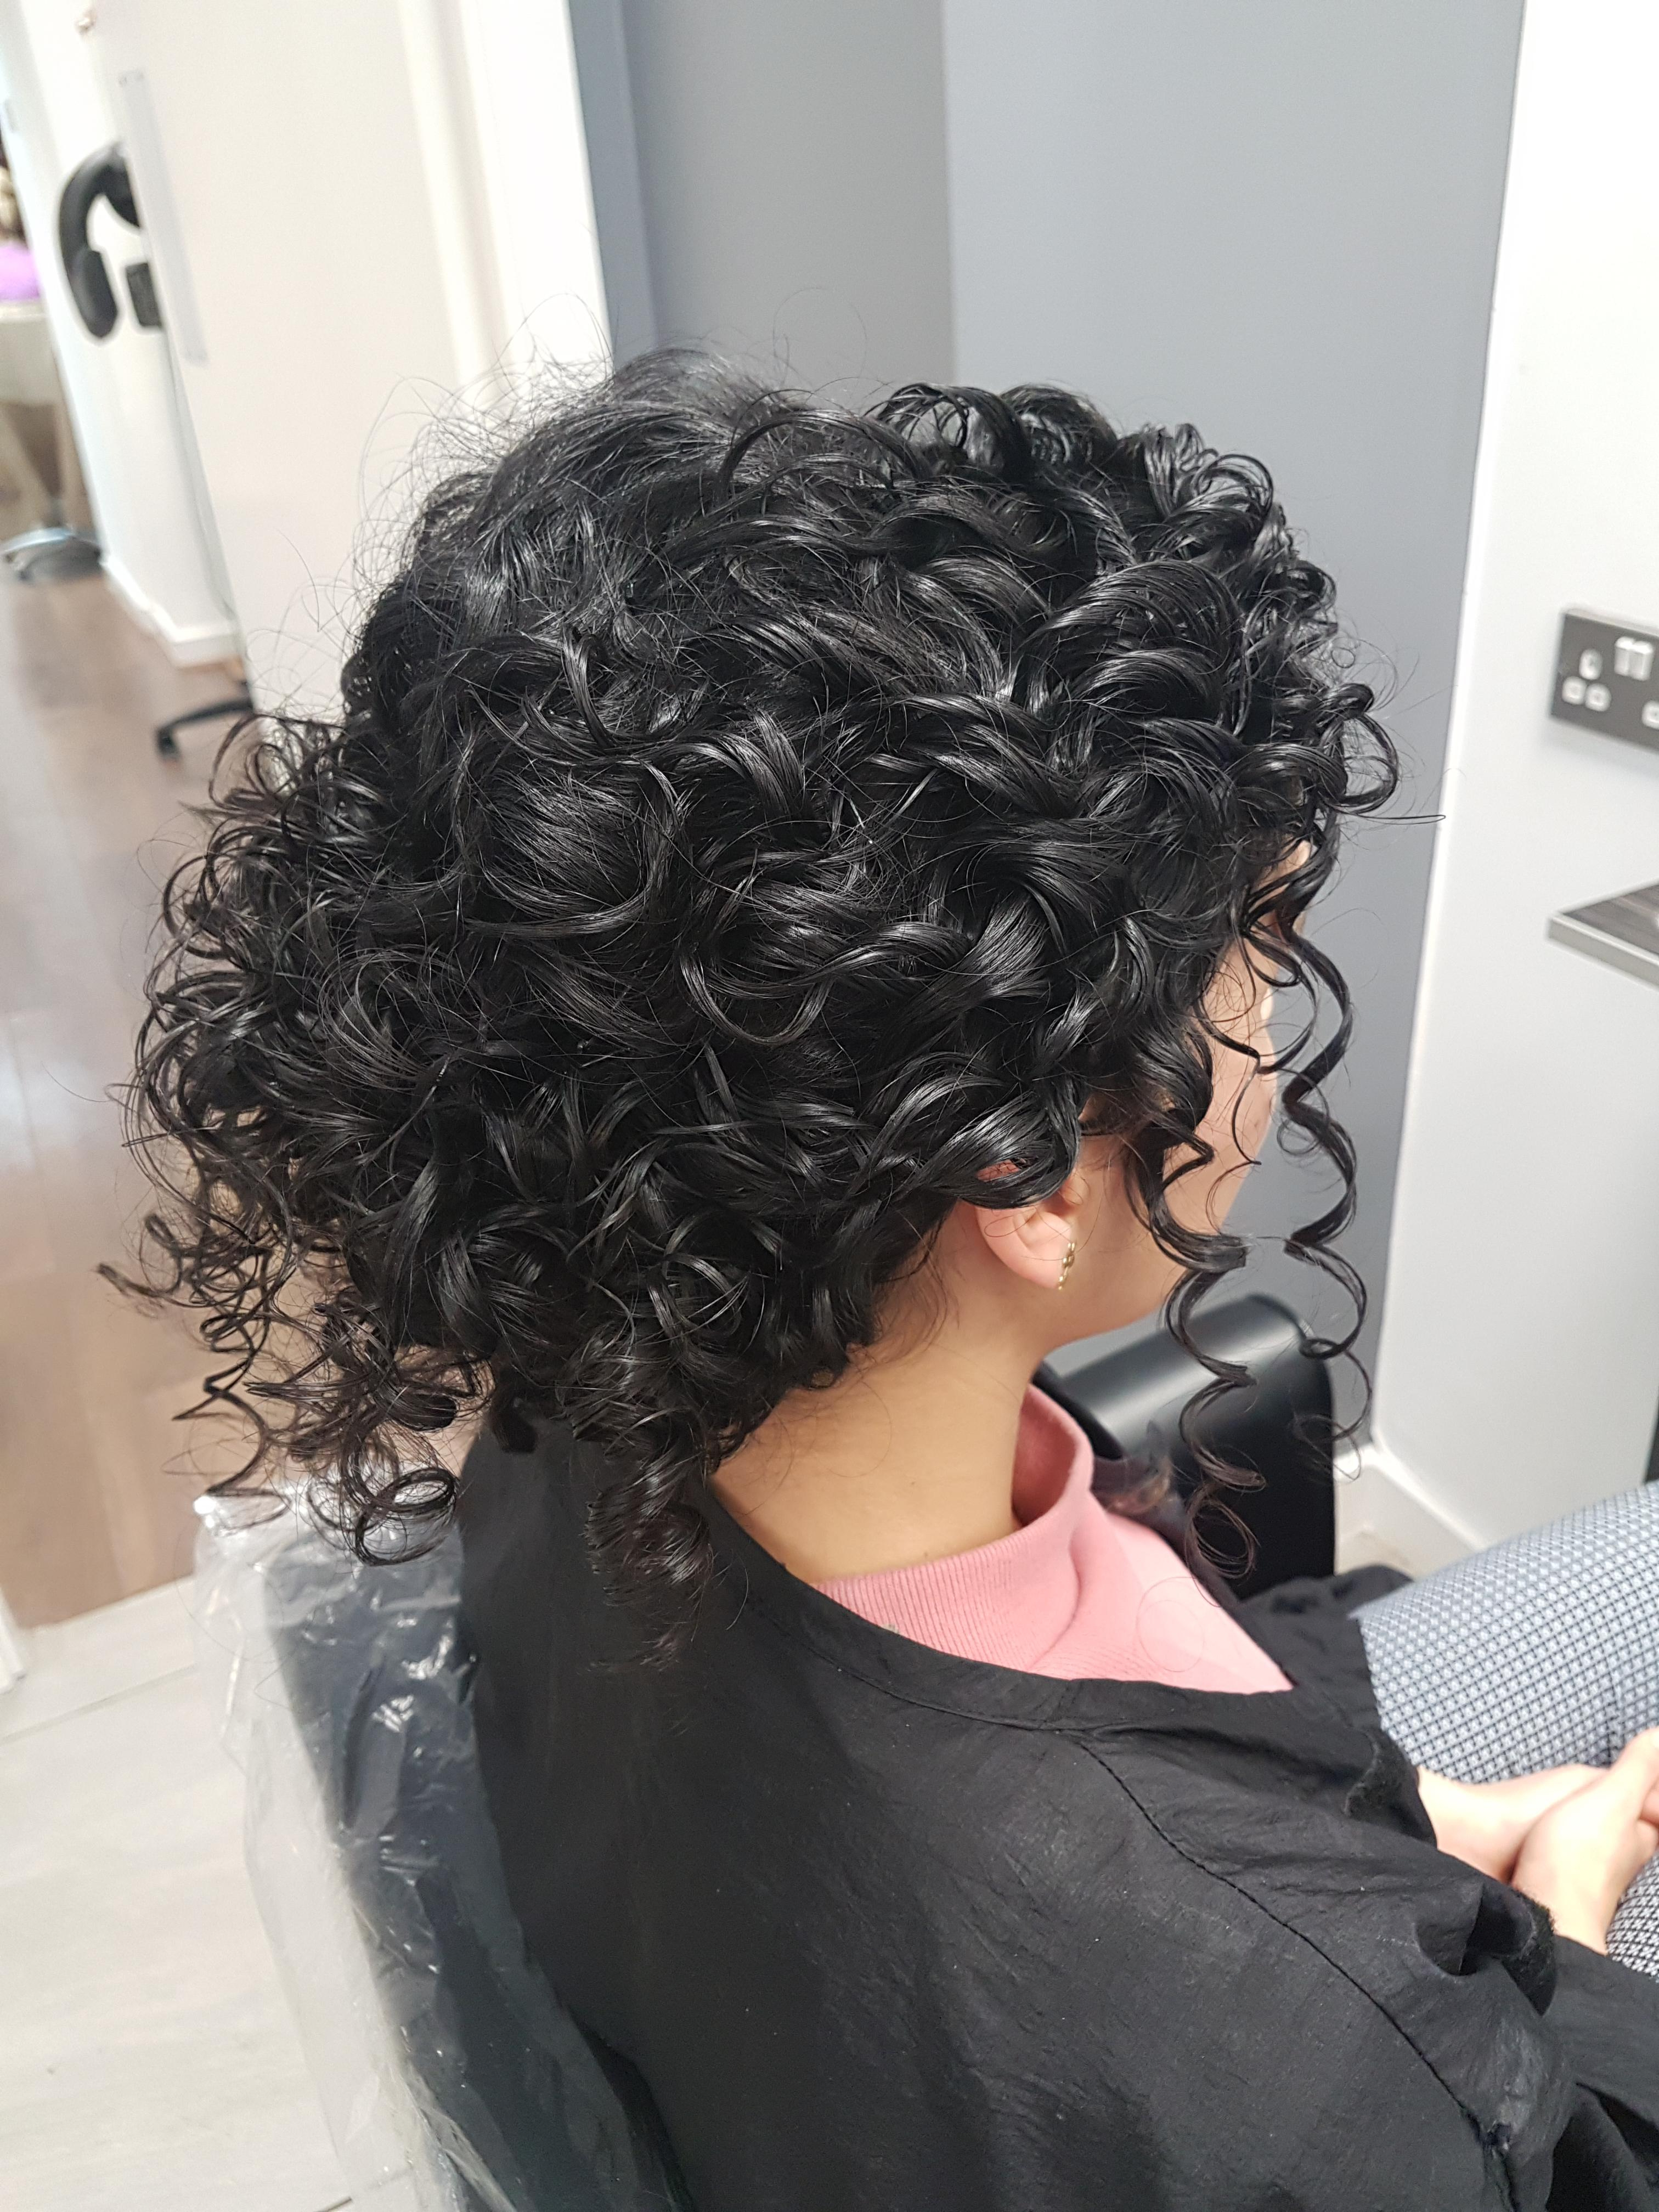 Trying Out A Natural Curly Hair Style For My Wedding! : Curlyhair With Newest Naturally Curly Wedding Hairstyles (View 8 of 20)